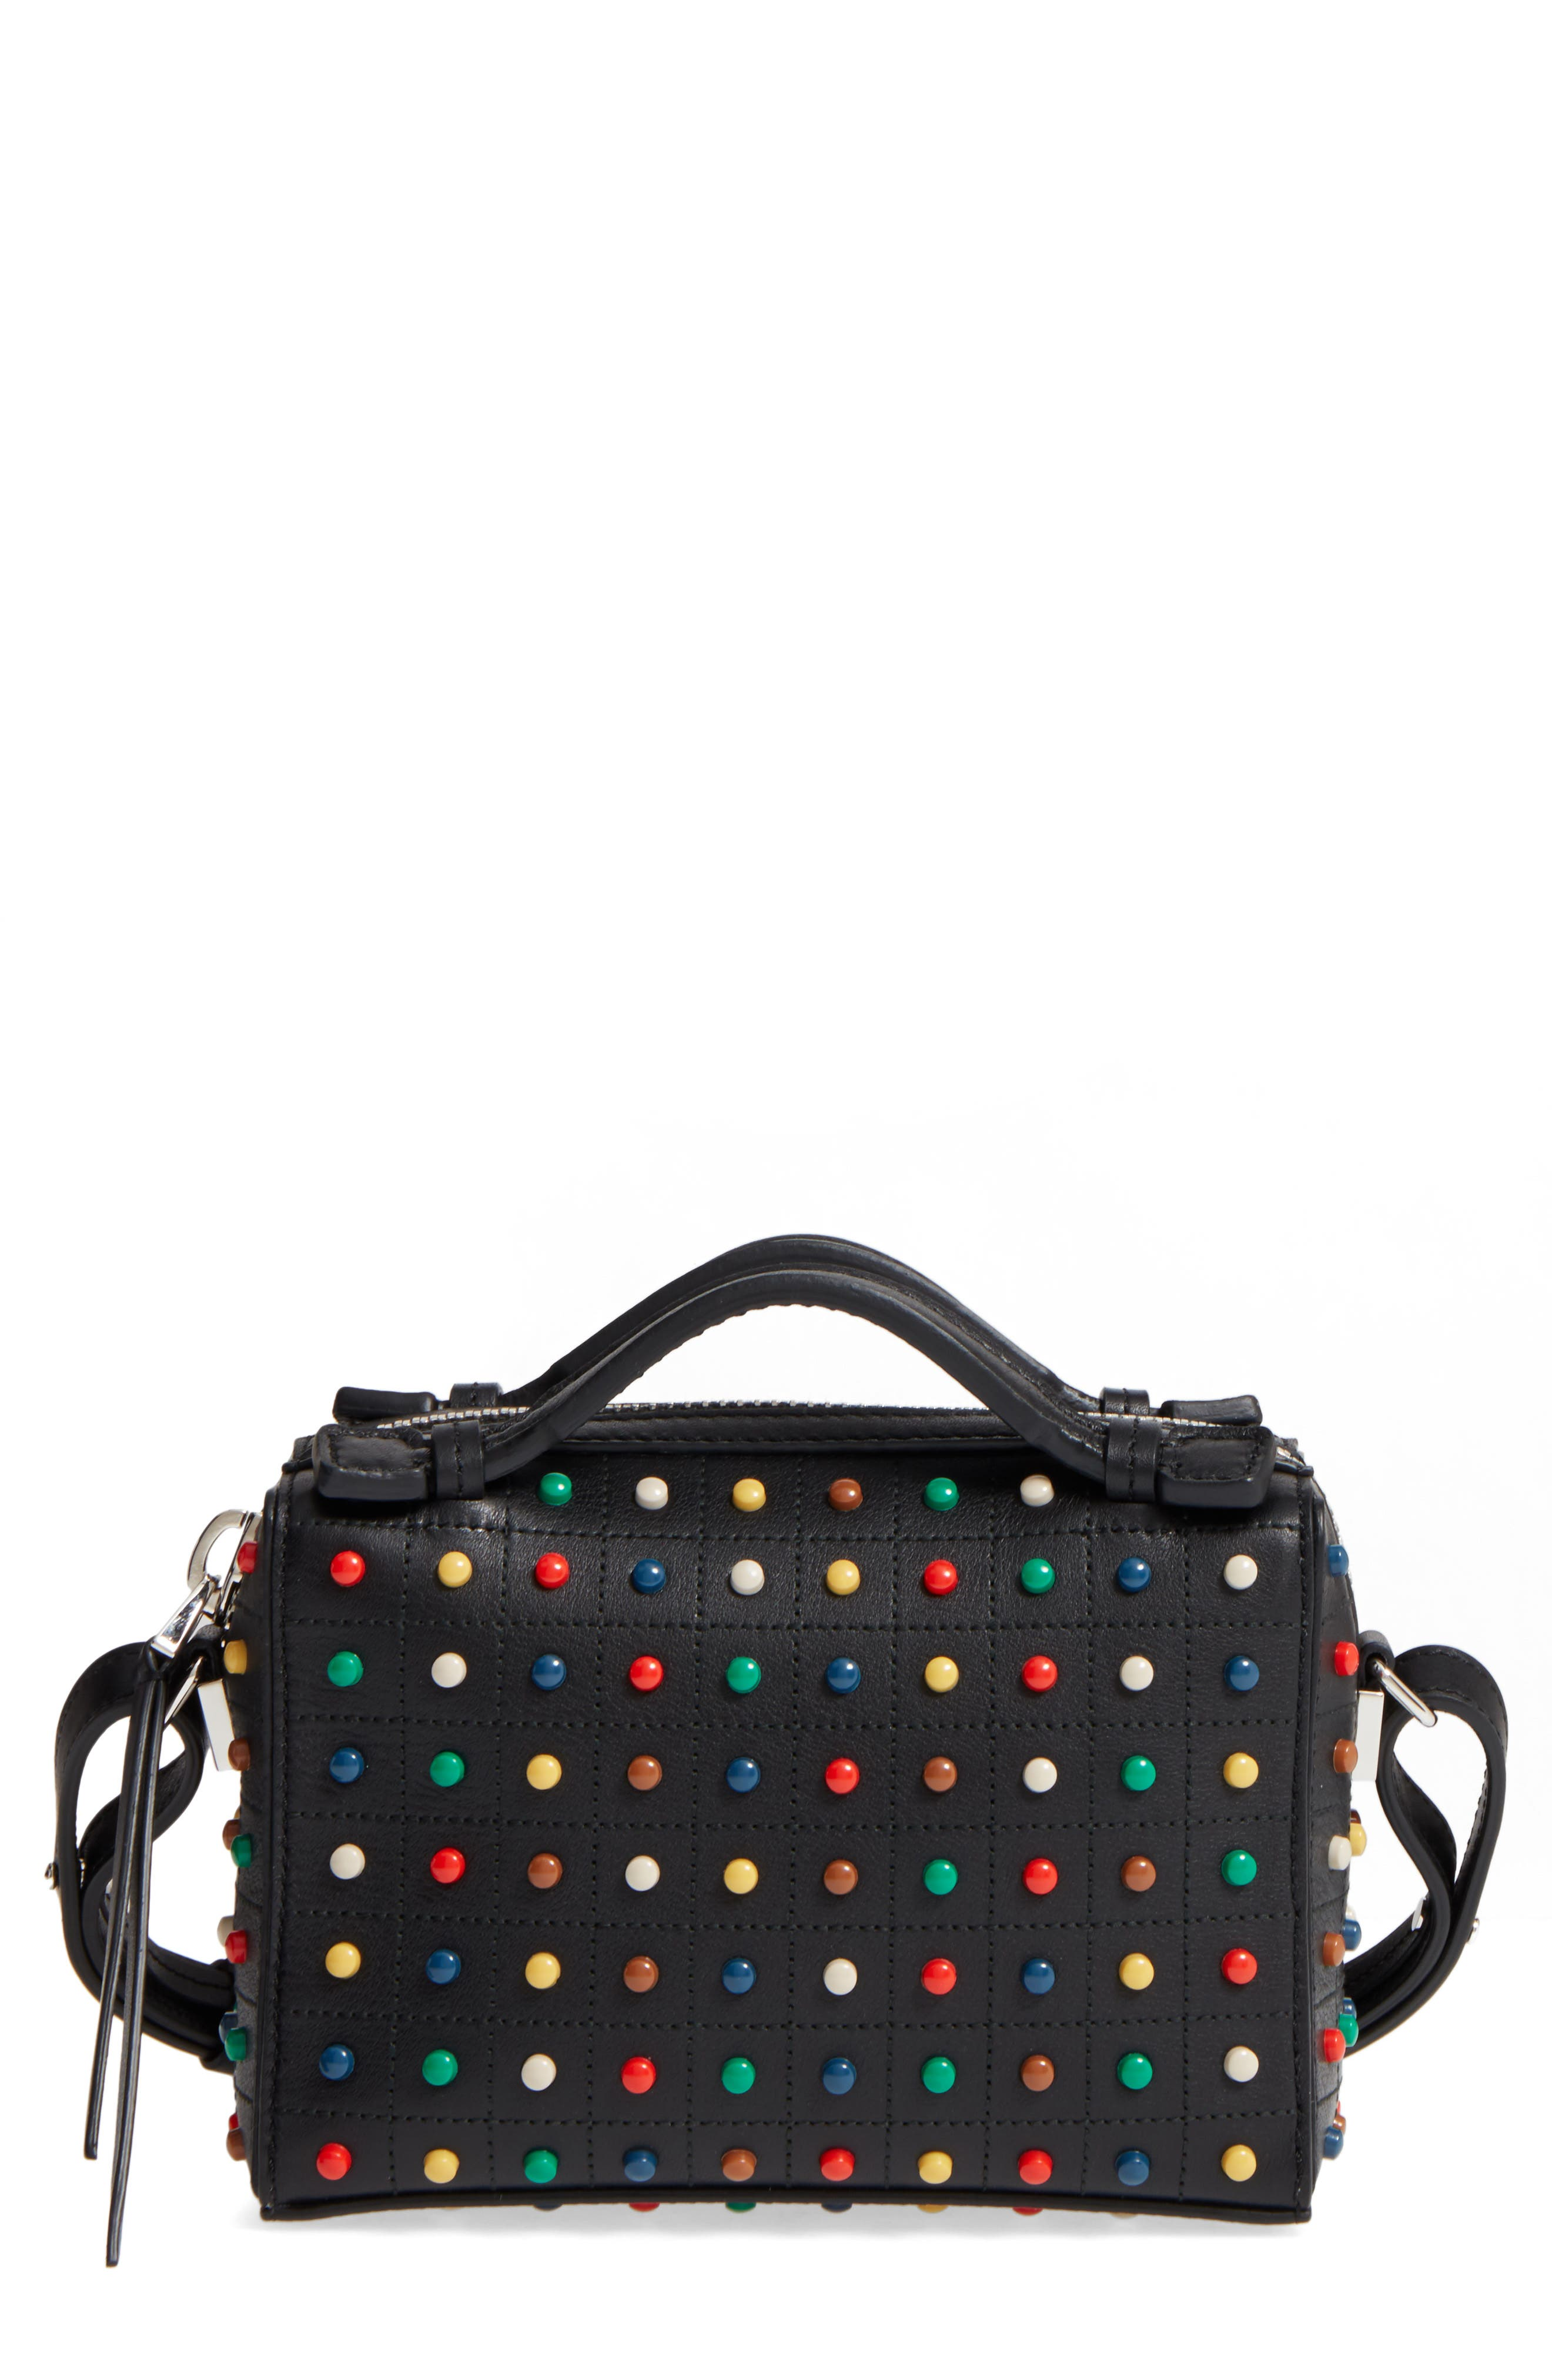 Alternate Image 1 Selected - Tod's Micro Diodon Rainbow Studded Leather Bowler Bag